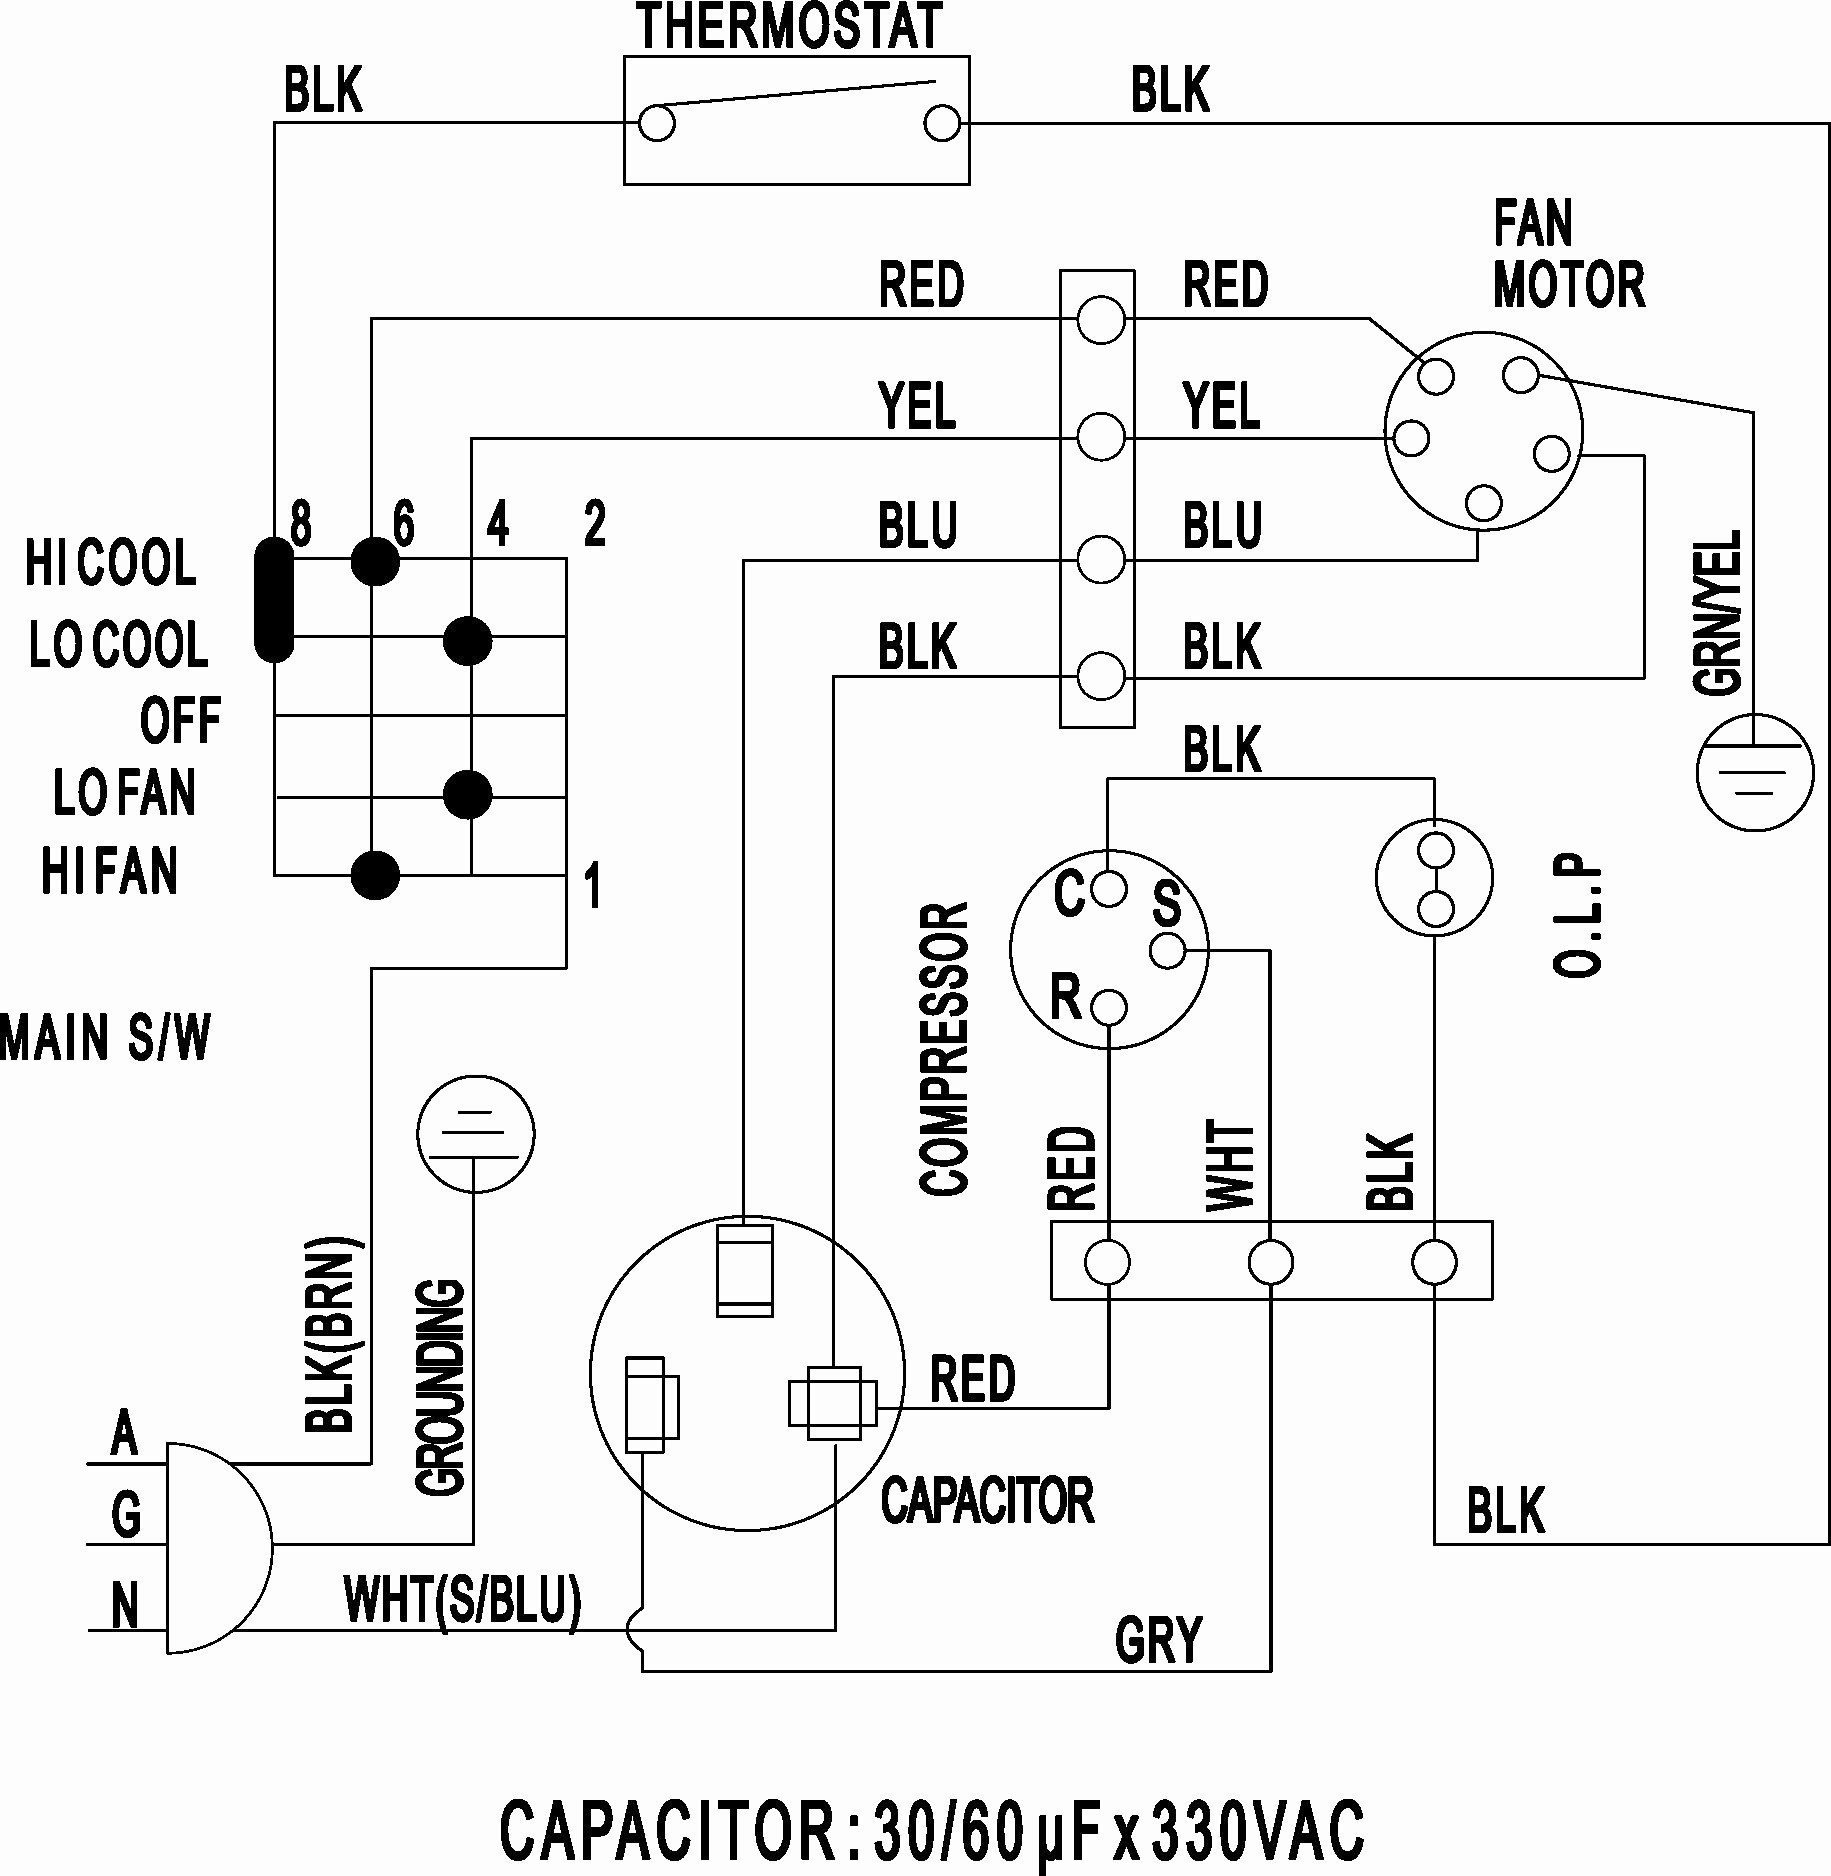 split air conditioner wiring diagram sample toyota hiace air con wiring diagram split air con wiring diagram